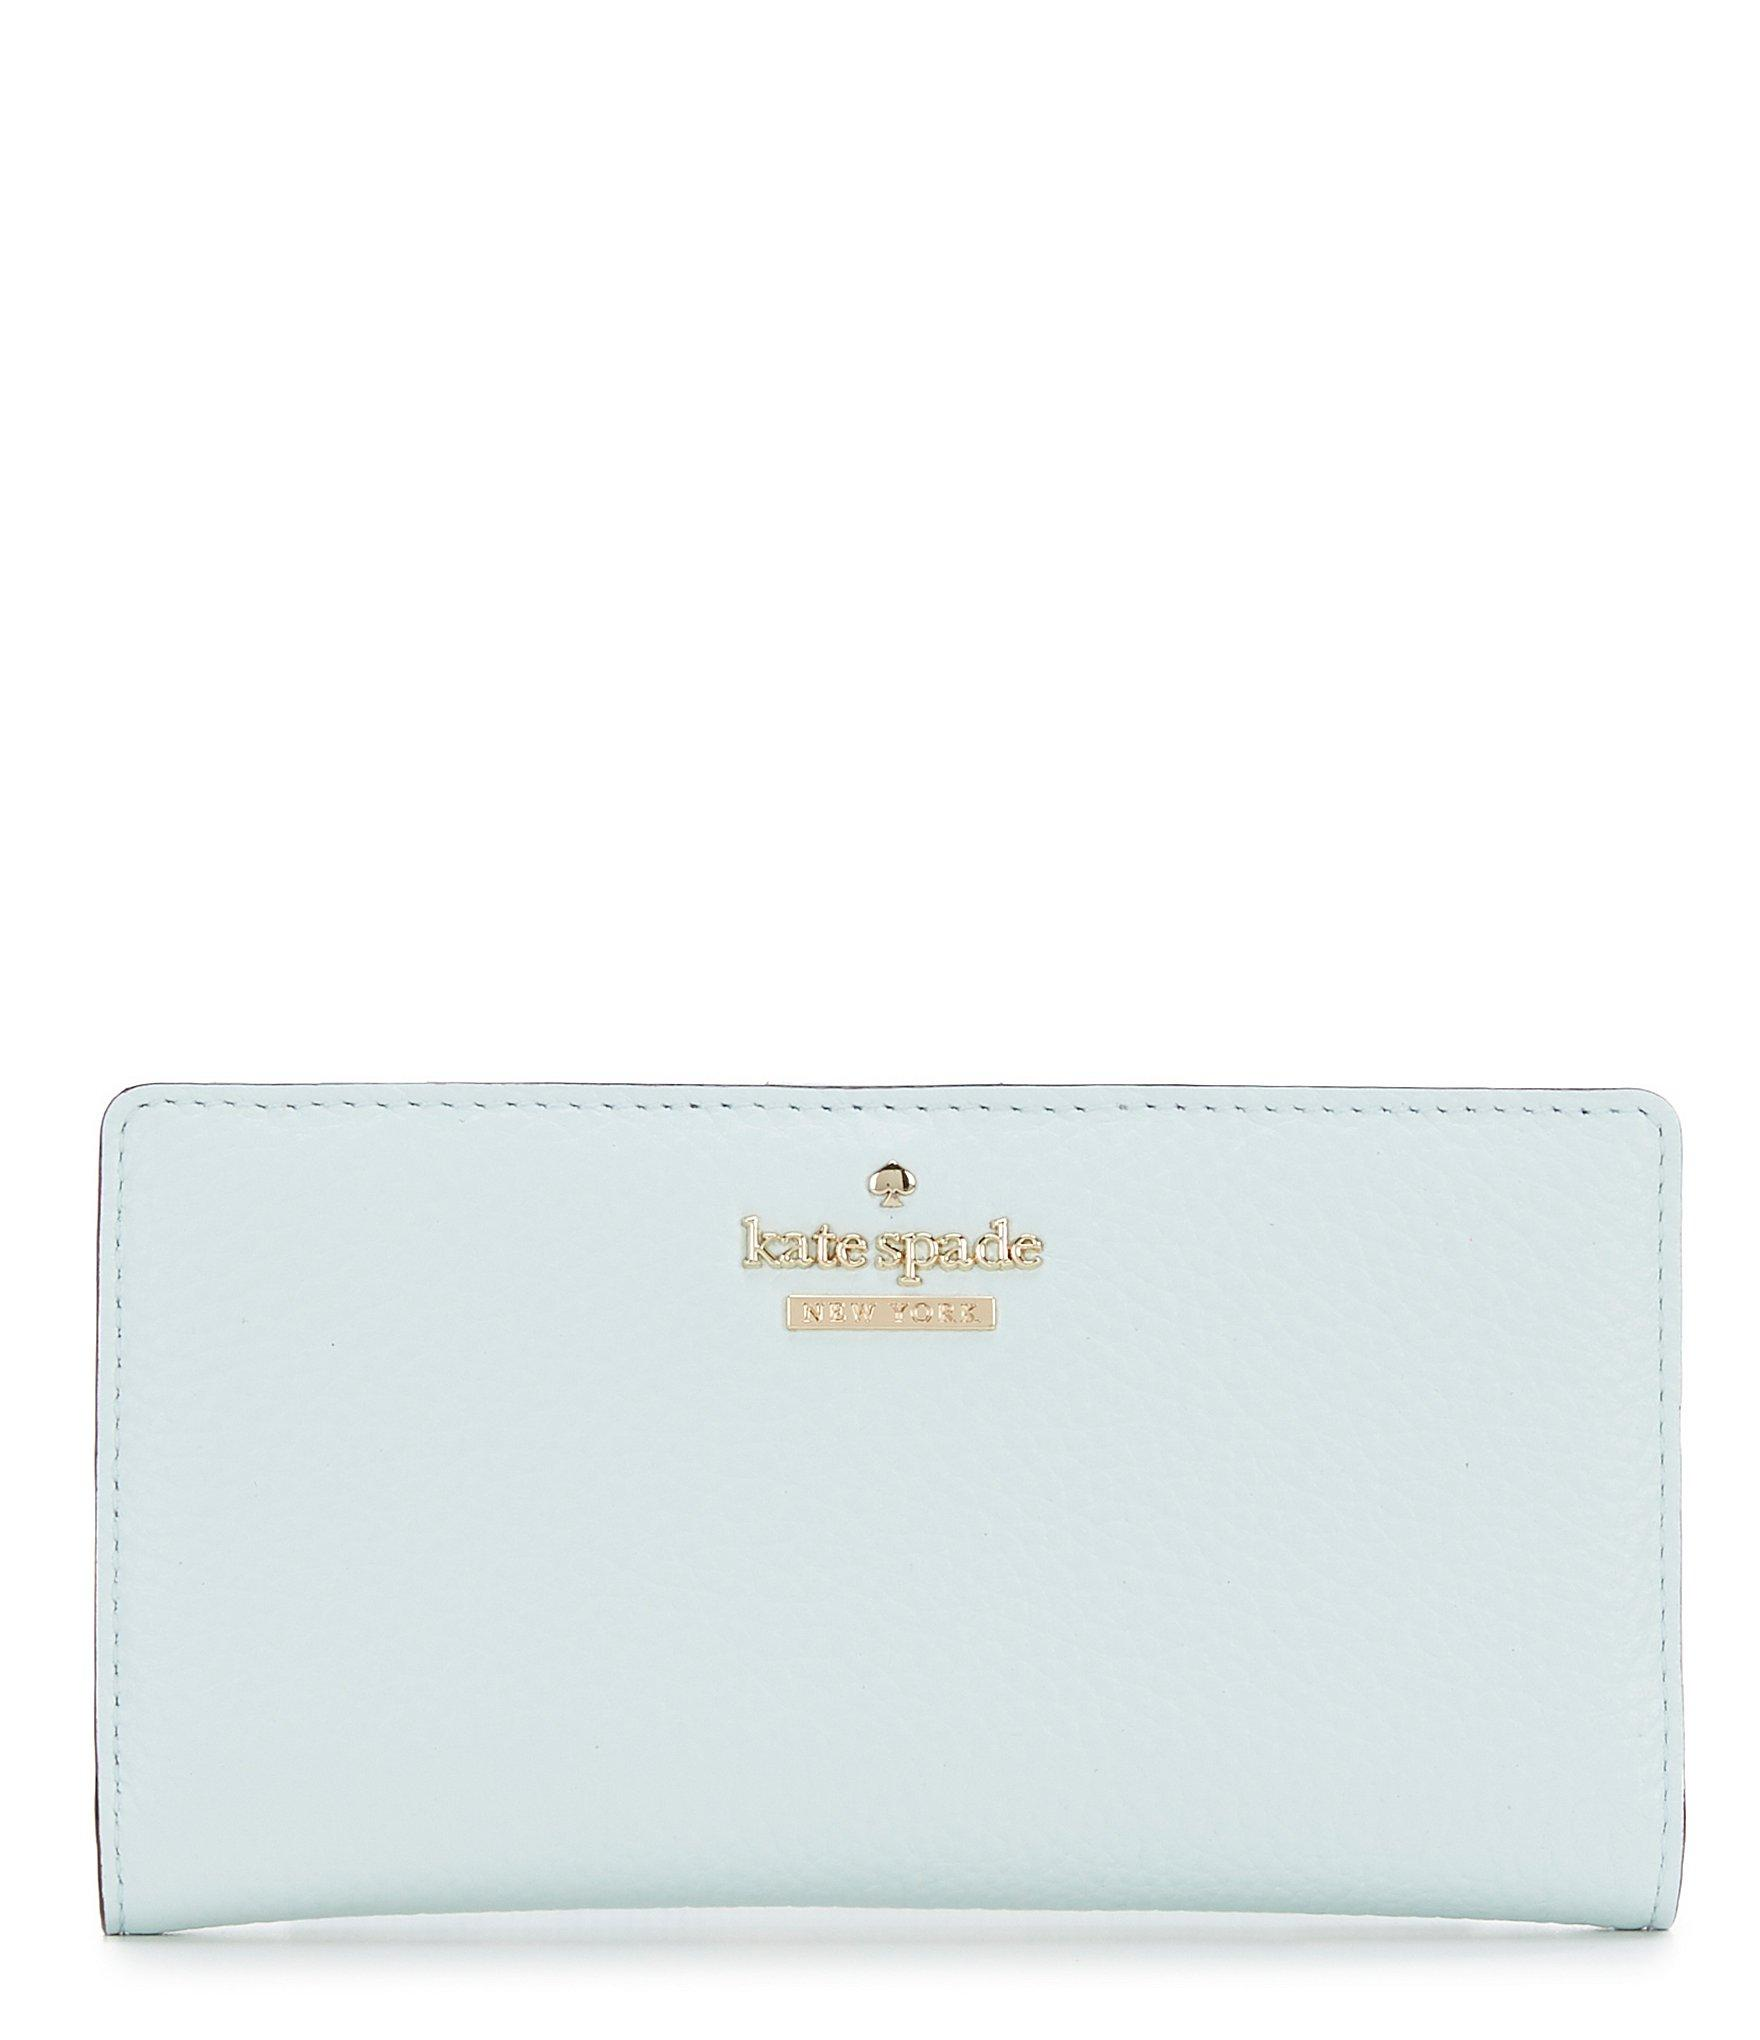 69a243126aec2 Gallery. Previously sold at  Dillard s · Women s Continental Wallets  Women s Kate Spade Cedar Street ...